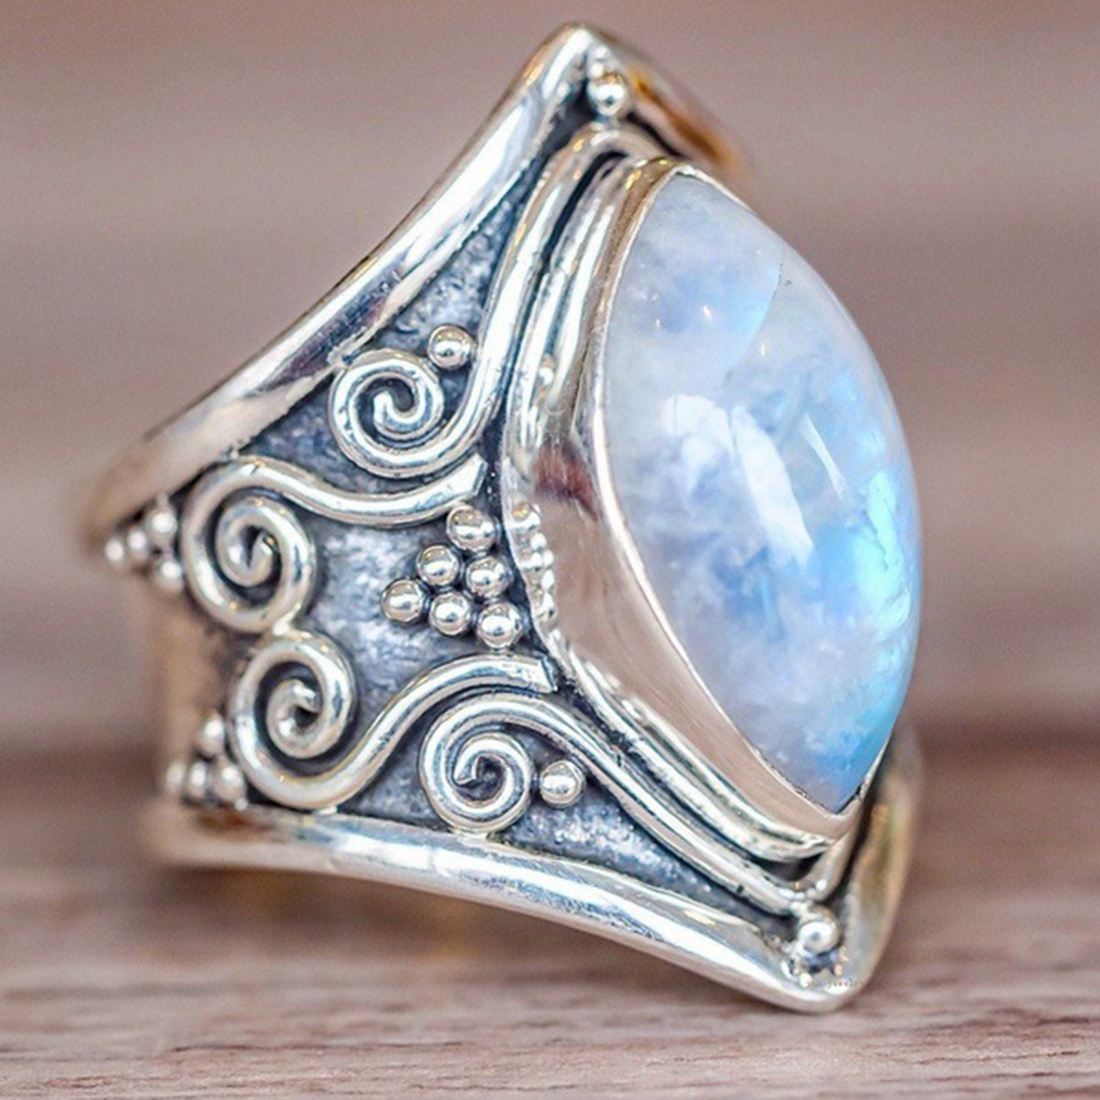 Vintage Silver Big Moonstone Stone Ring for Women Fashion Bohemian Boho Jewelry 2018 New Hot